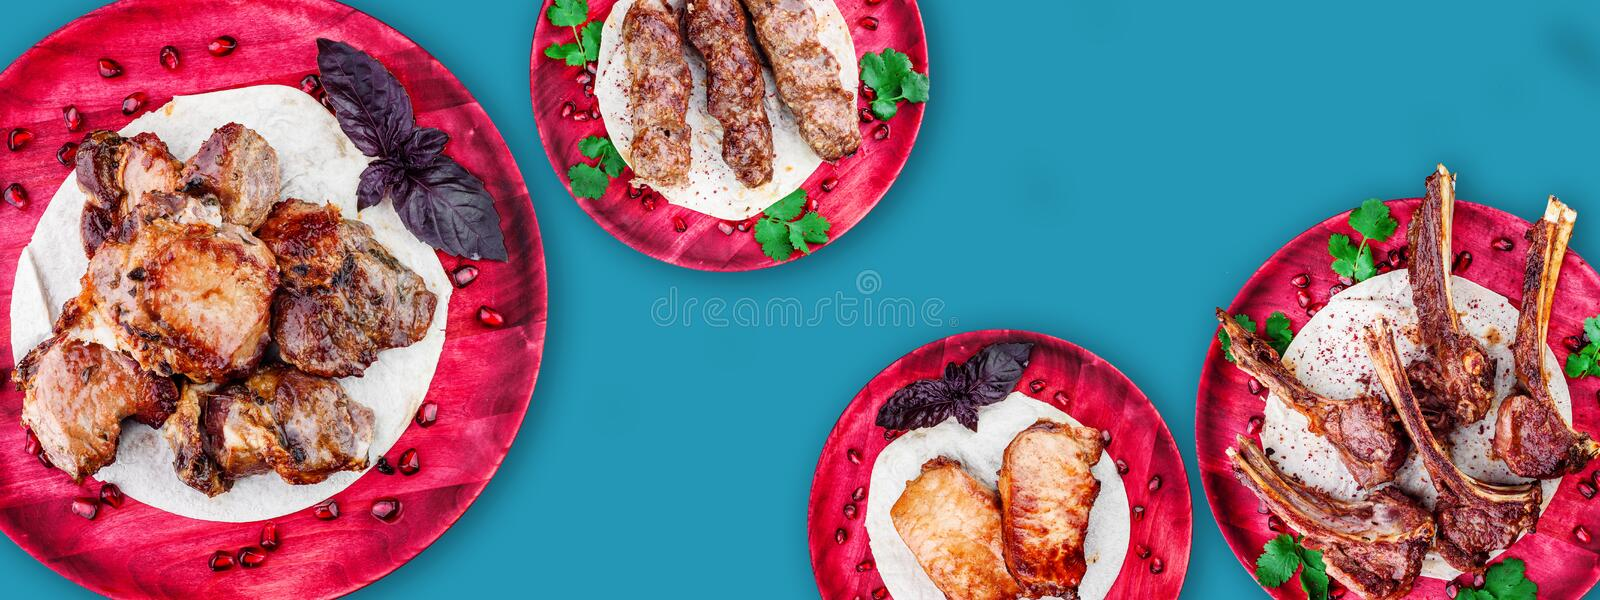 Meat collage. veal ribs, pork, veal and beef barbecue on wooden red plates isolated on a blue background. top view. royalty free stock photography